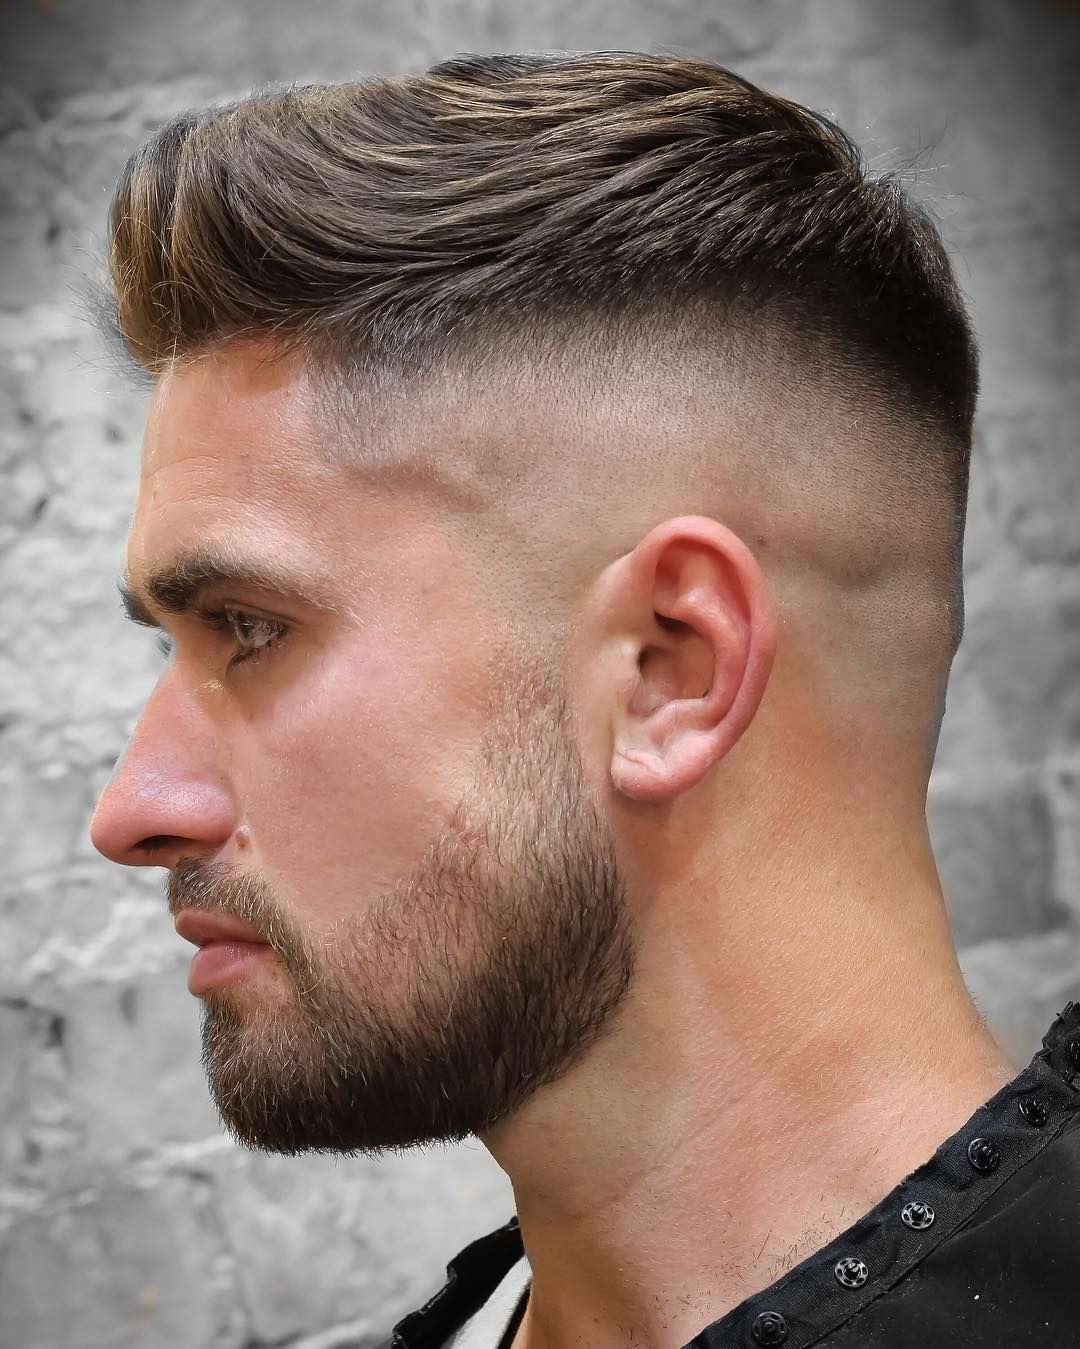 Mens hairstyles 2019 | Hair styles in 2019 | Hair cuts ...